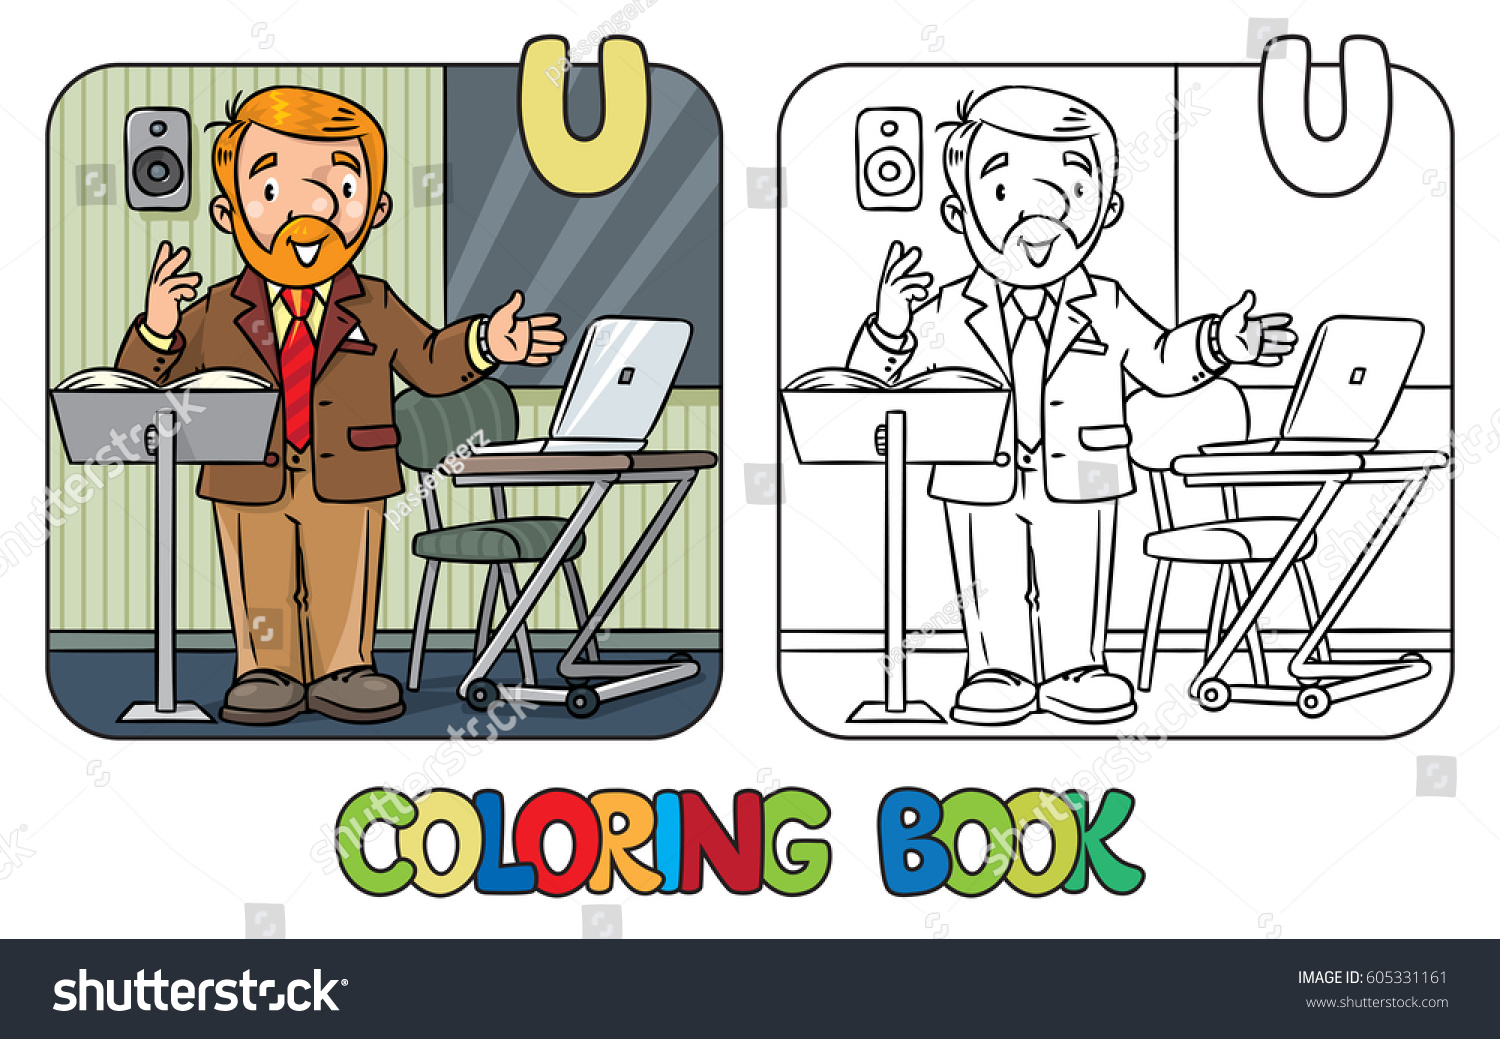 Coloring Book Of Funny University Lecturer A Man With Beard Is Giving Lecture